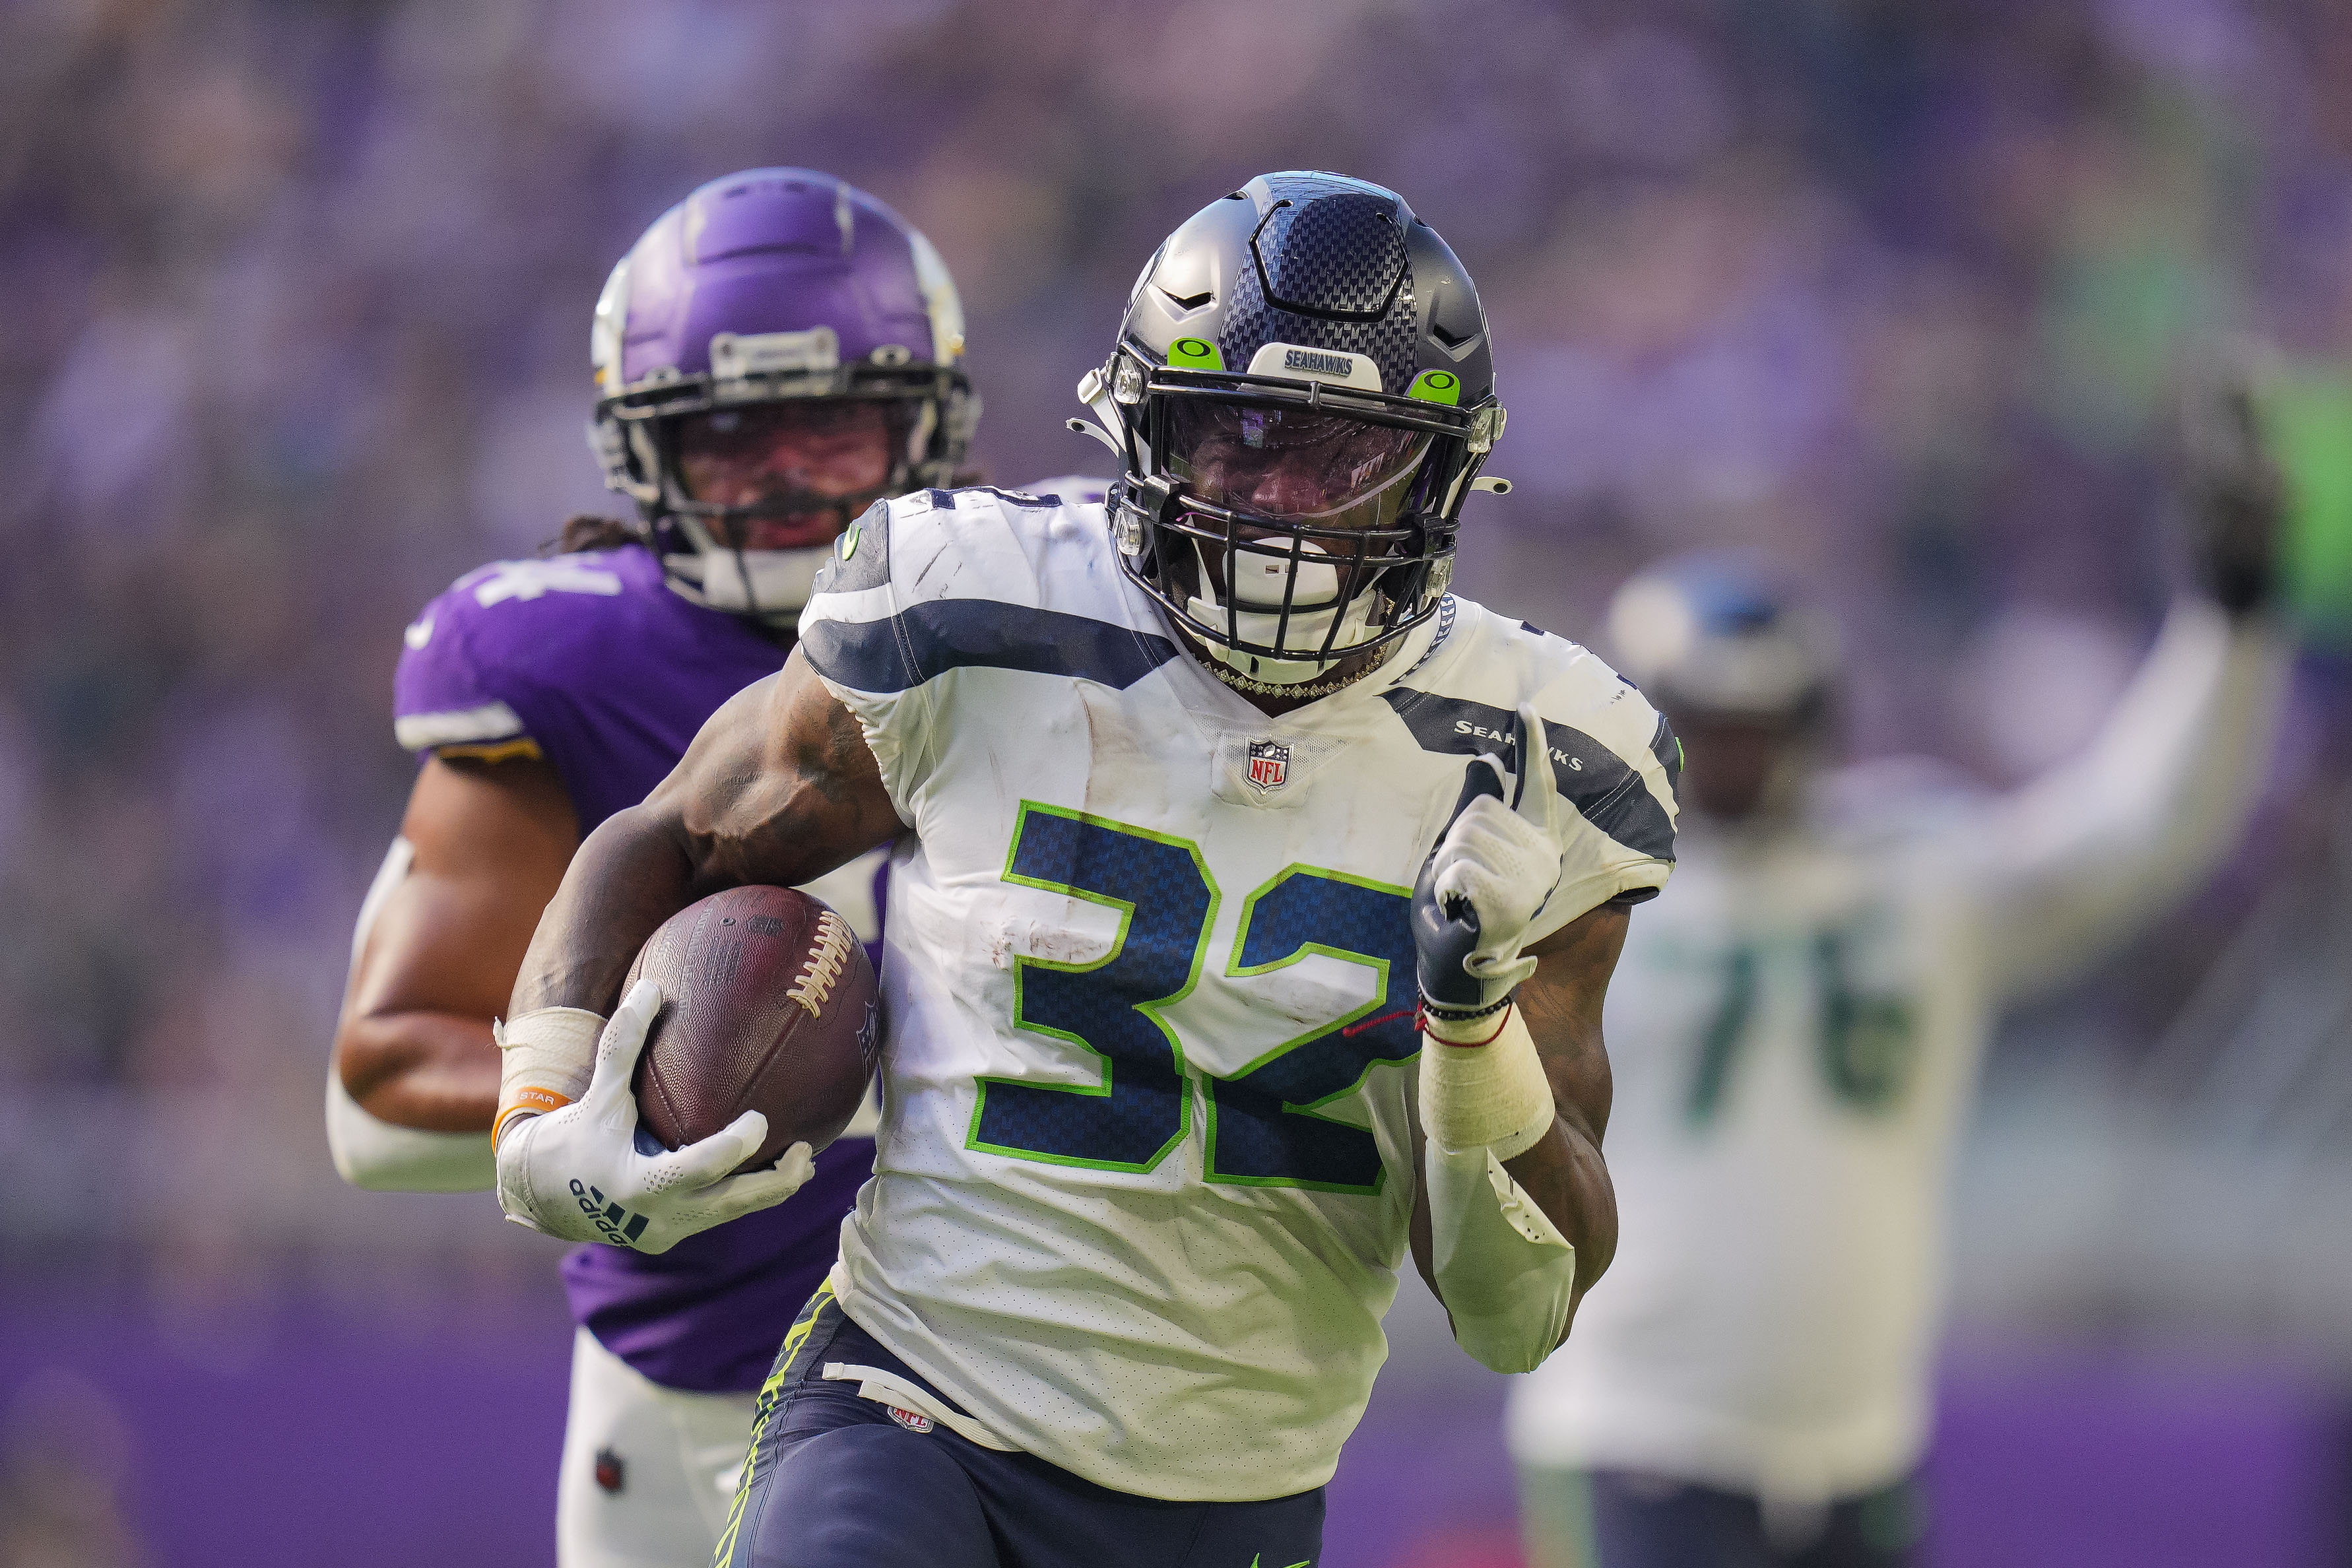 Seattle Seahawks running back Chris Carson (32) scores a touchdown against the Minnesota Vikings in the second quarter at U.S. Bank Stadium.